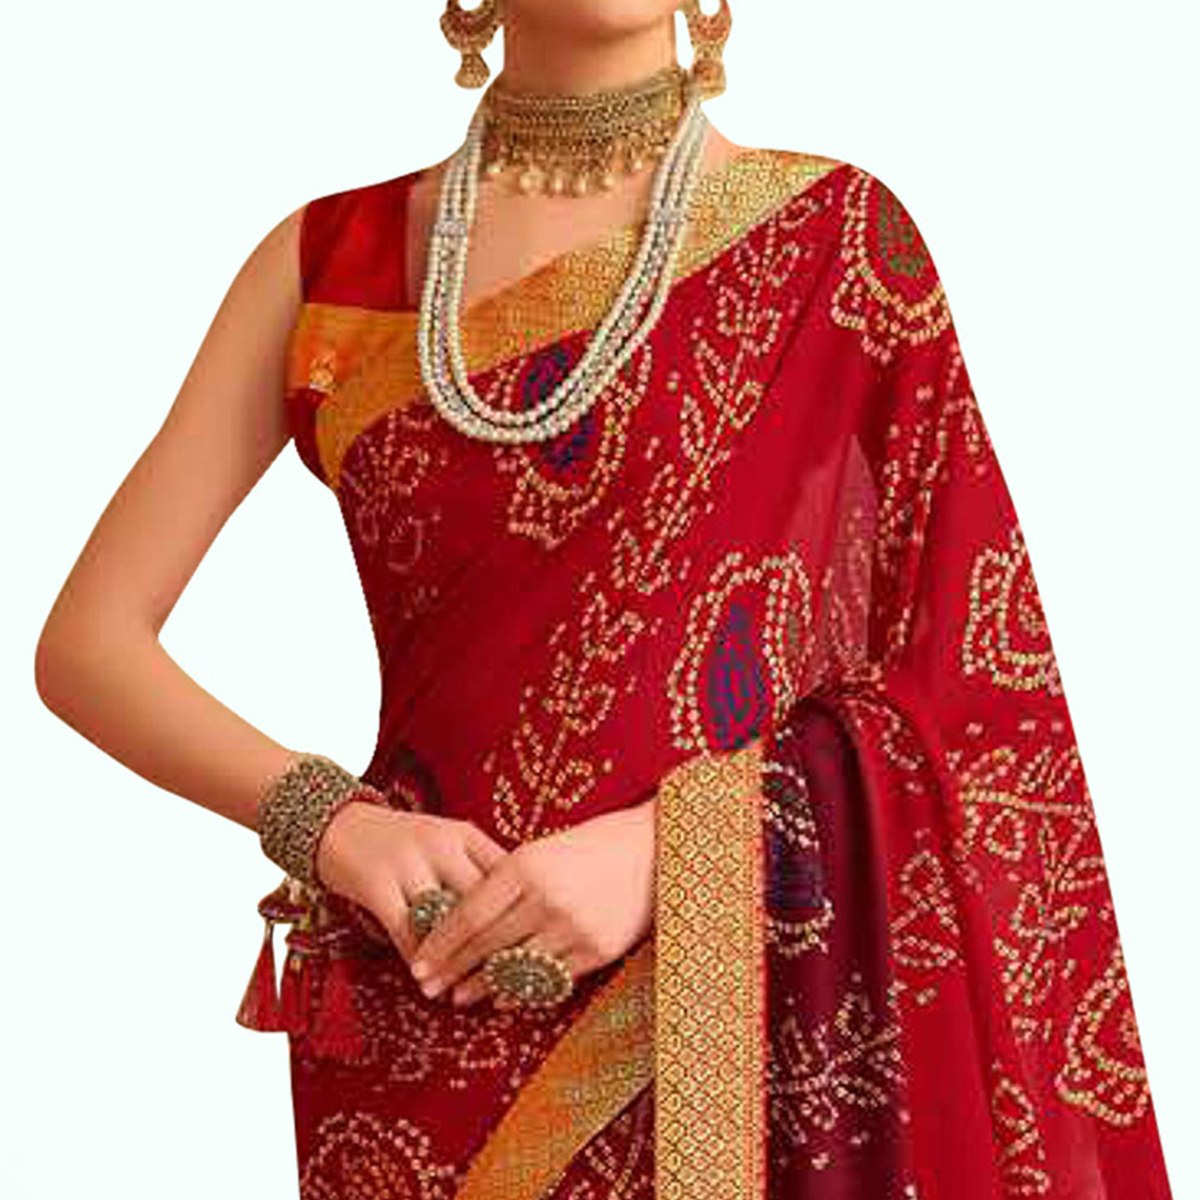 Glorious Red Colored Bandhani Printed Heavy Georgette Saree With Jacquard Lace Border